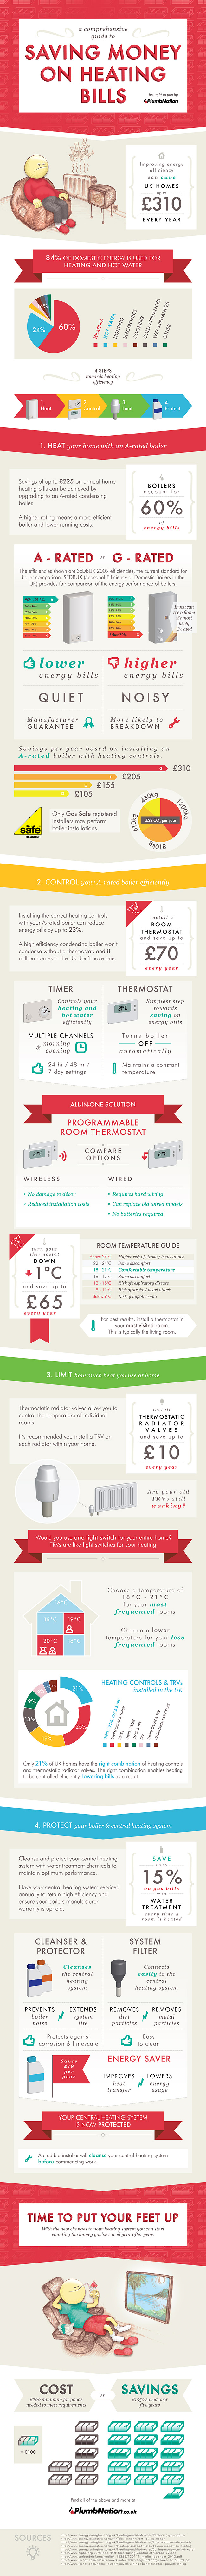 Save Money On Heating Bills Infographic